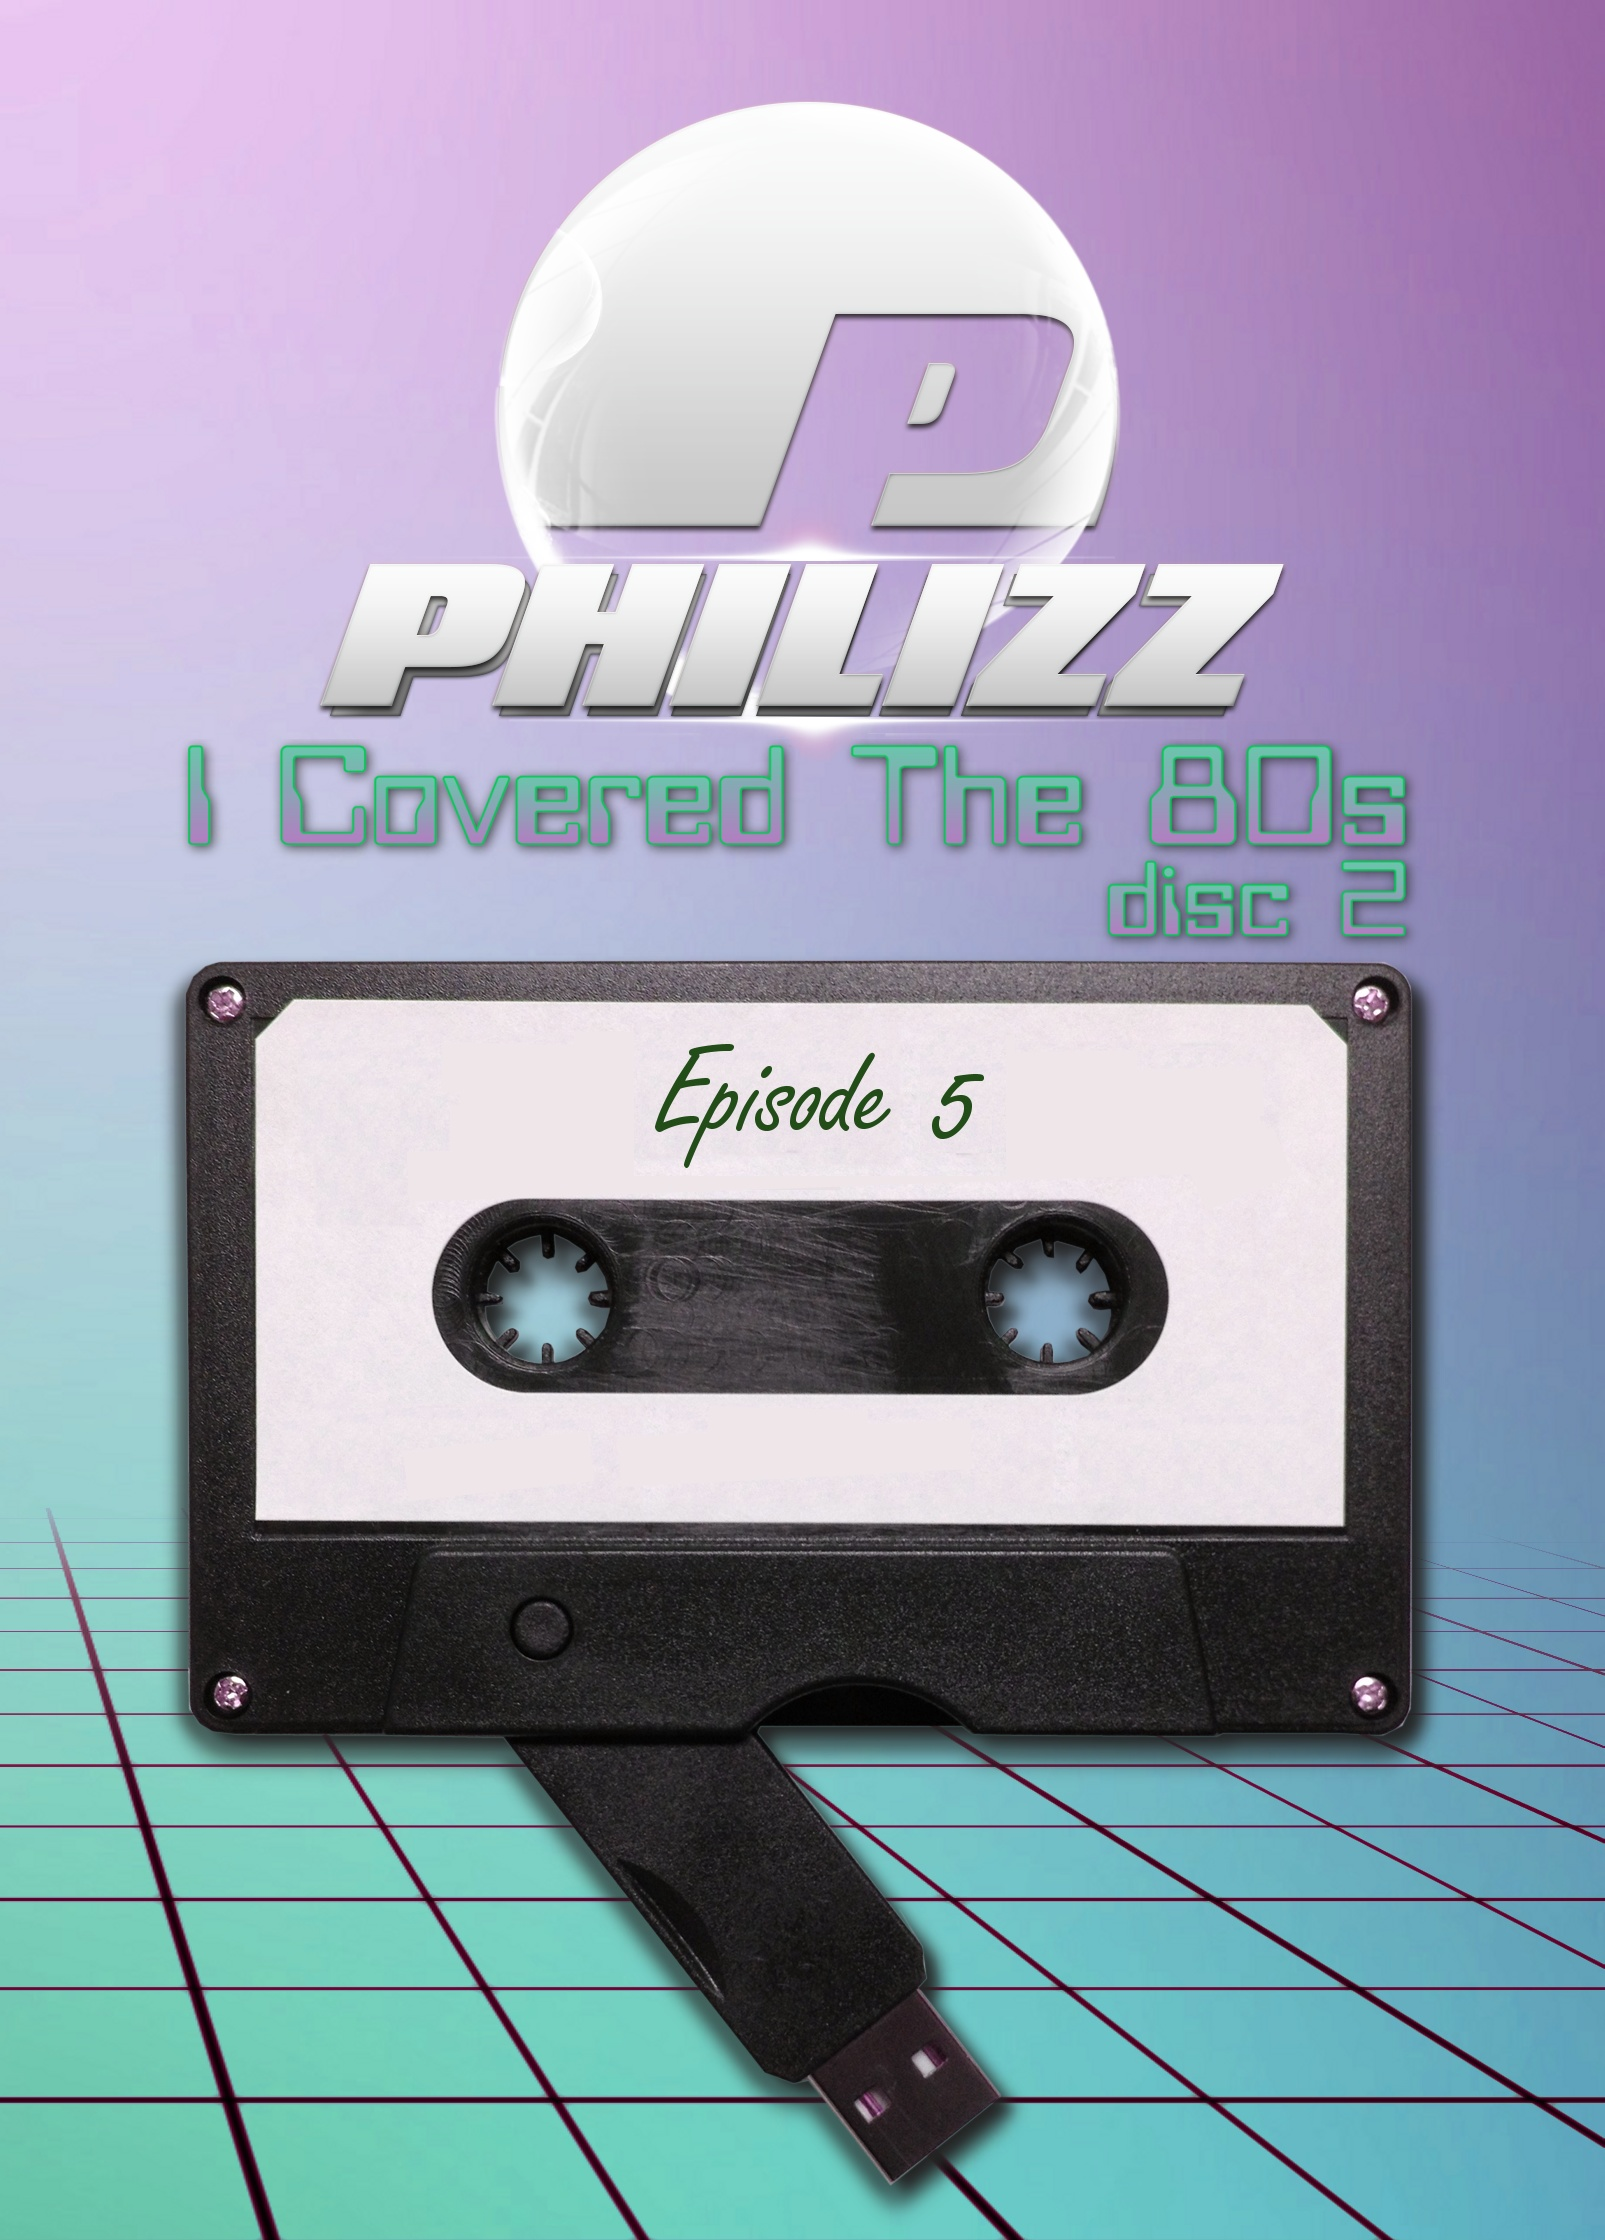 Philizz: I Covered The 80s Vol. 05